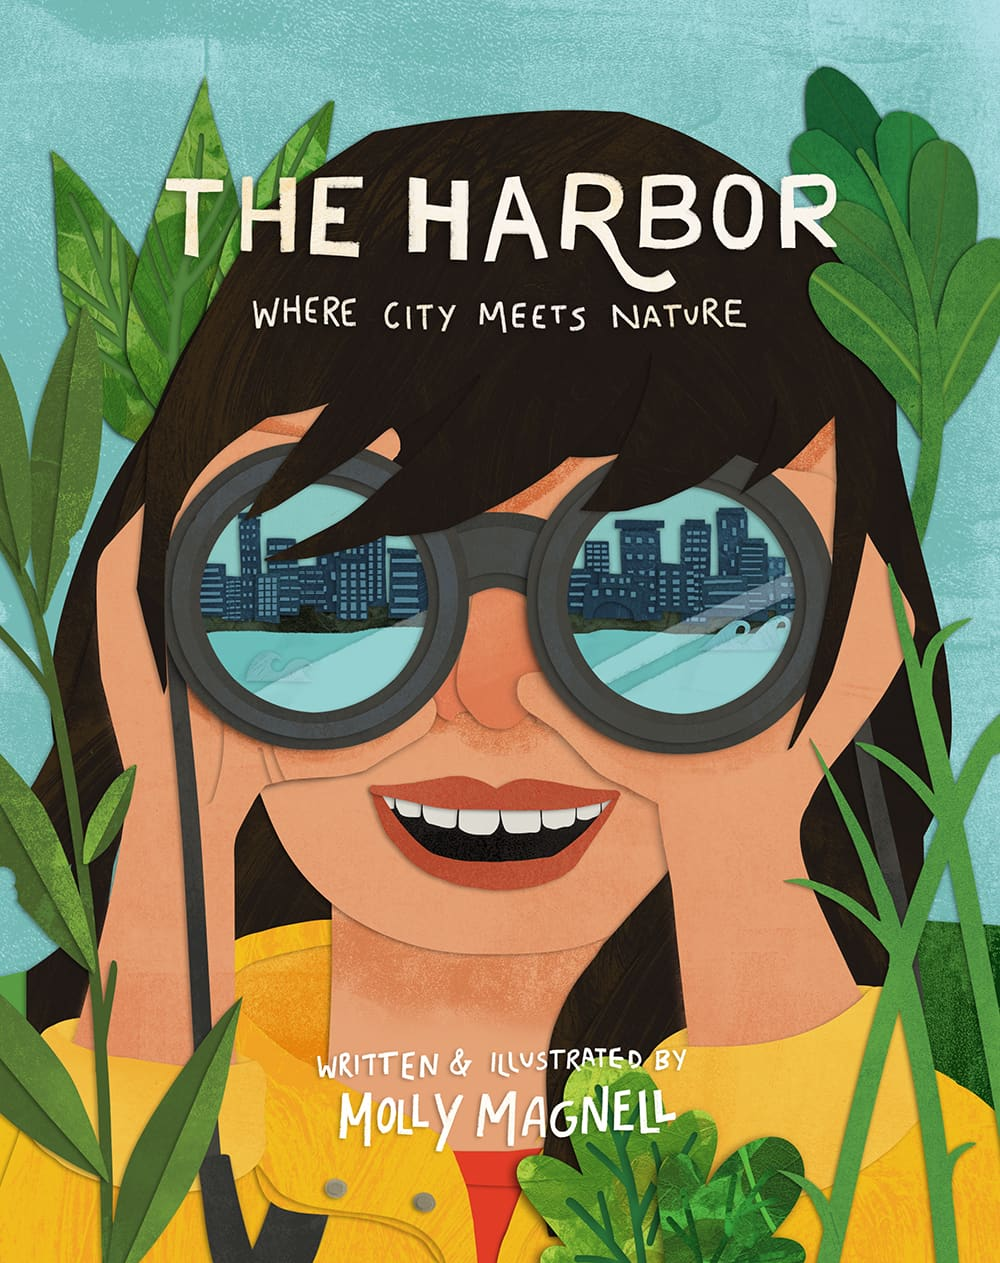 The Harbor: Where City Meets Nature